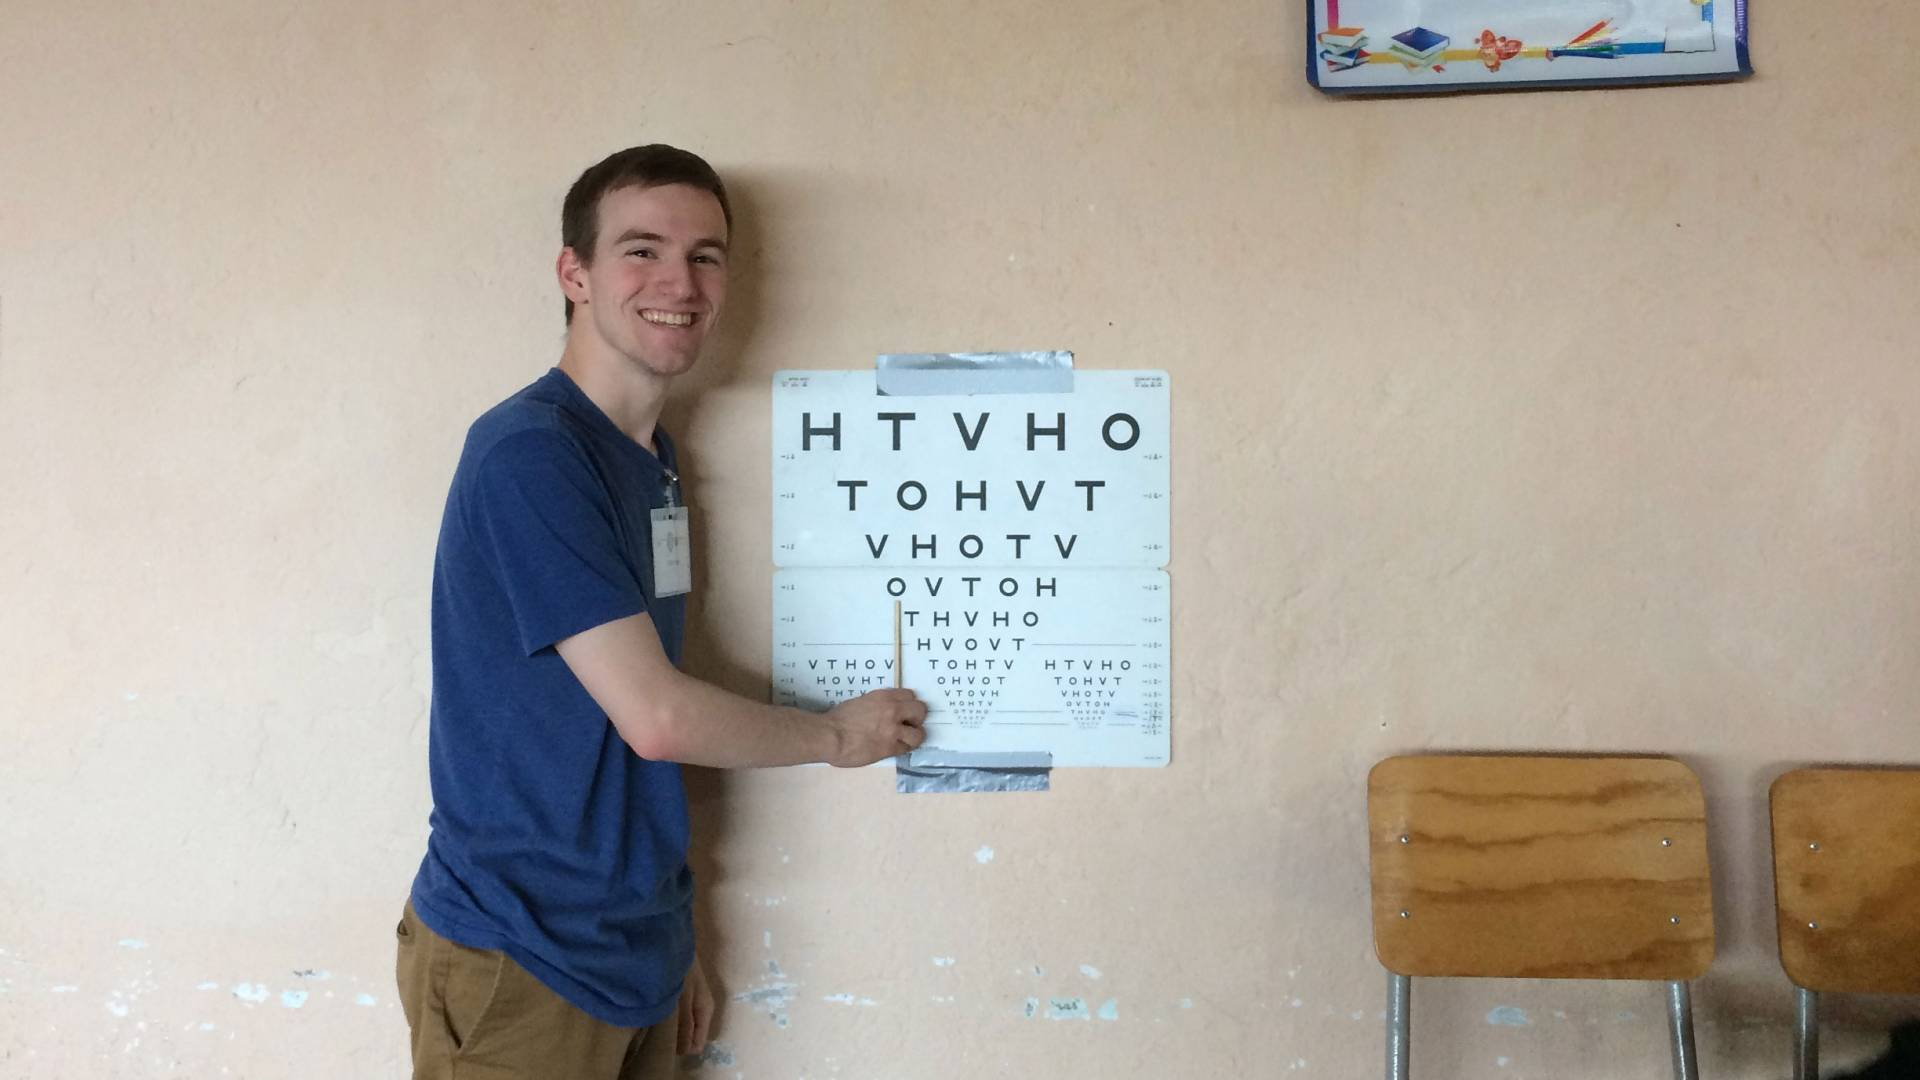 Student pointing to eye chart taped to wall